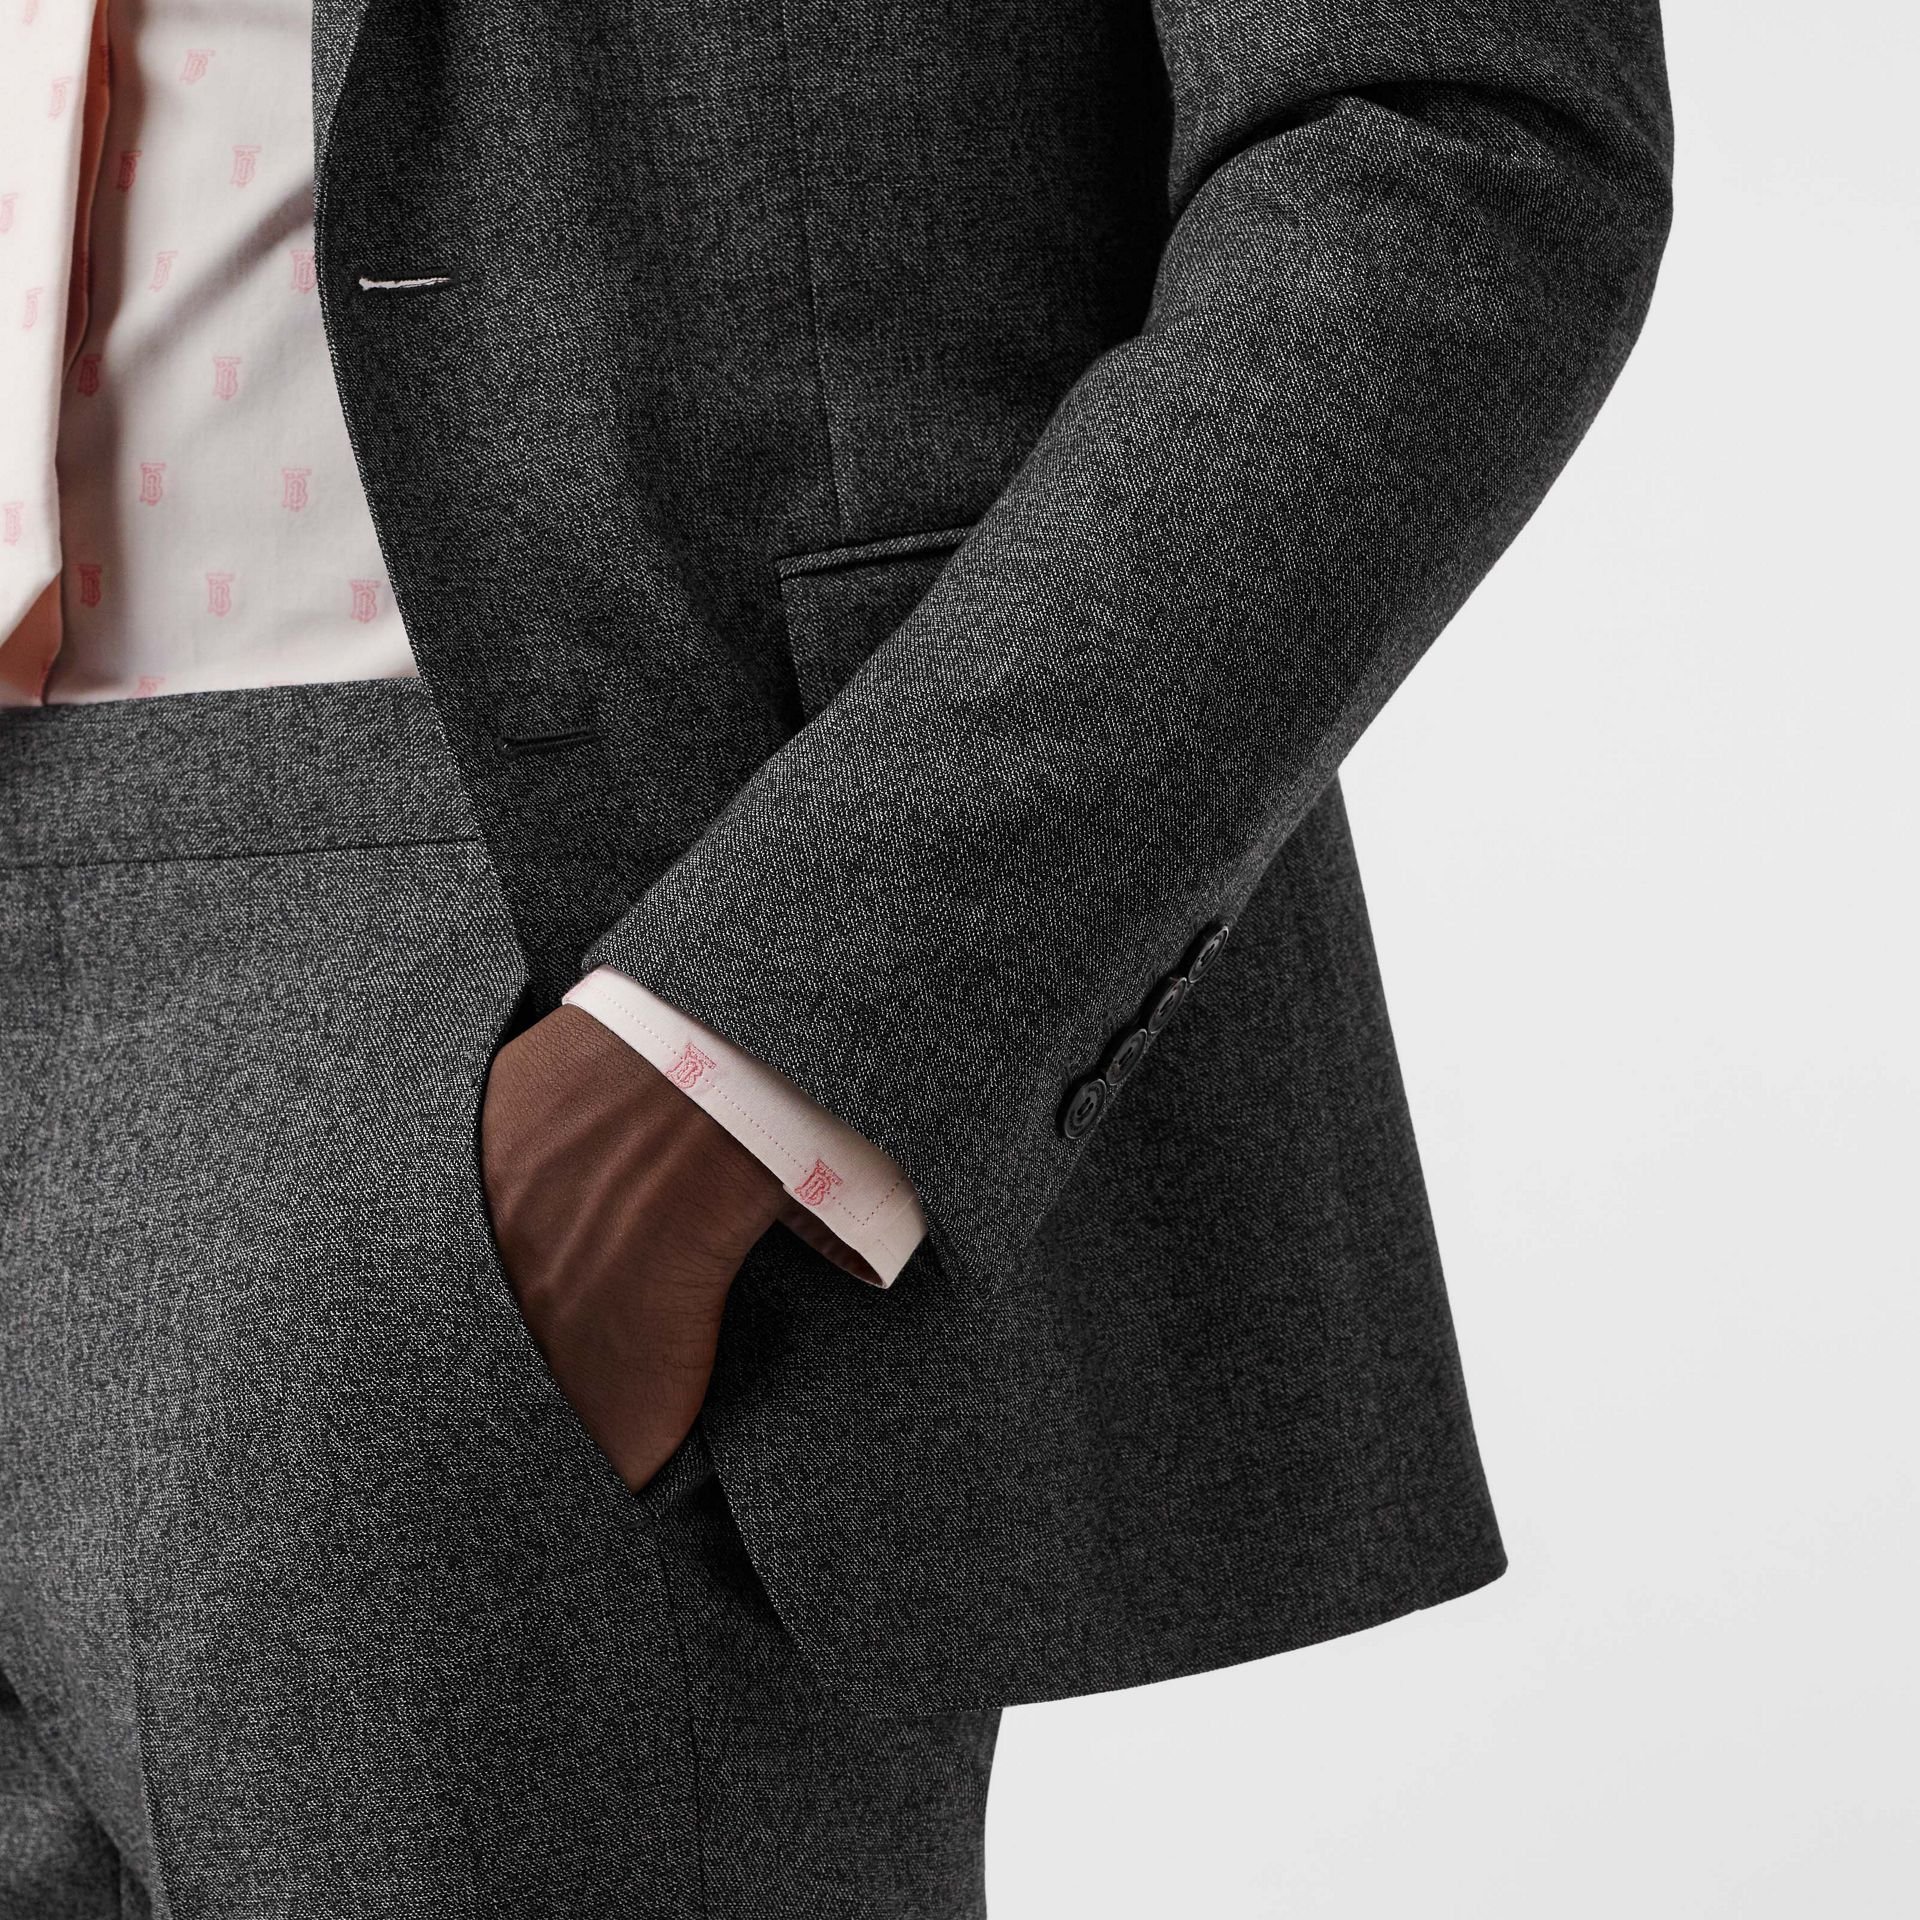 English Fit Sharkskin Wool Suit in Black Melange - Men | Burberry Australia - gallery image 4